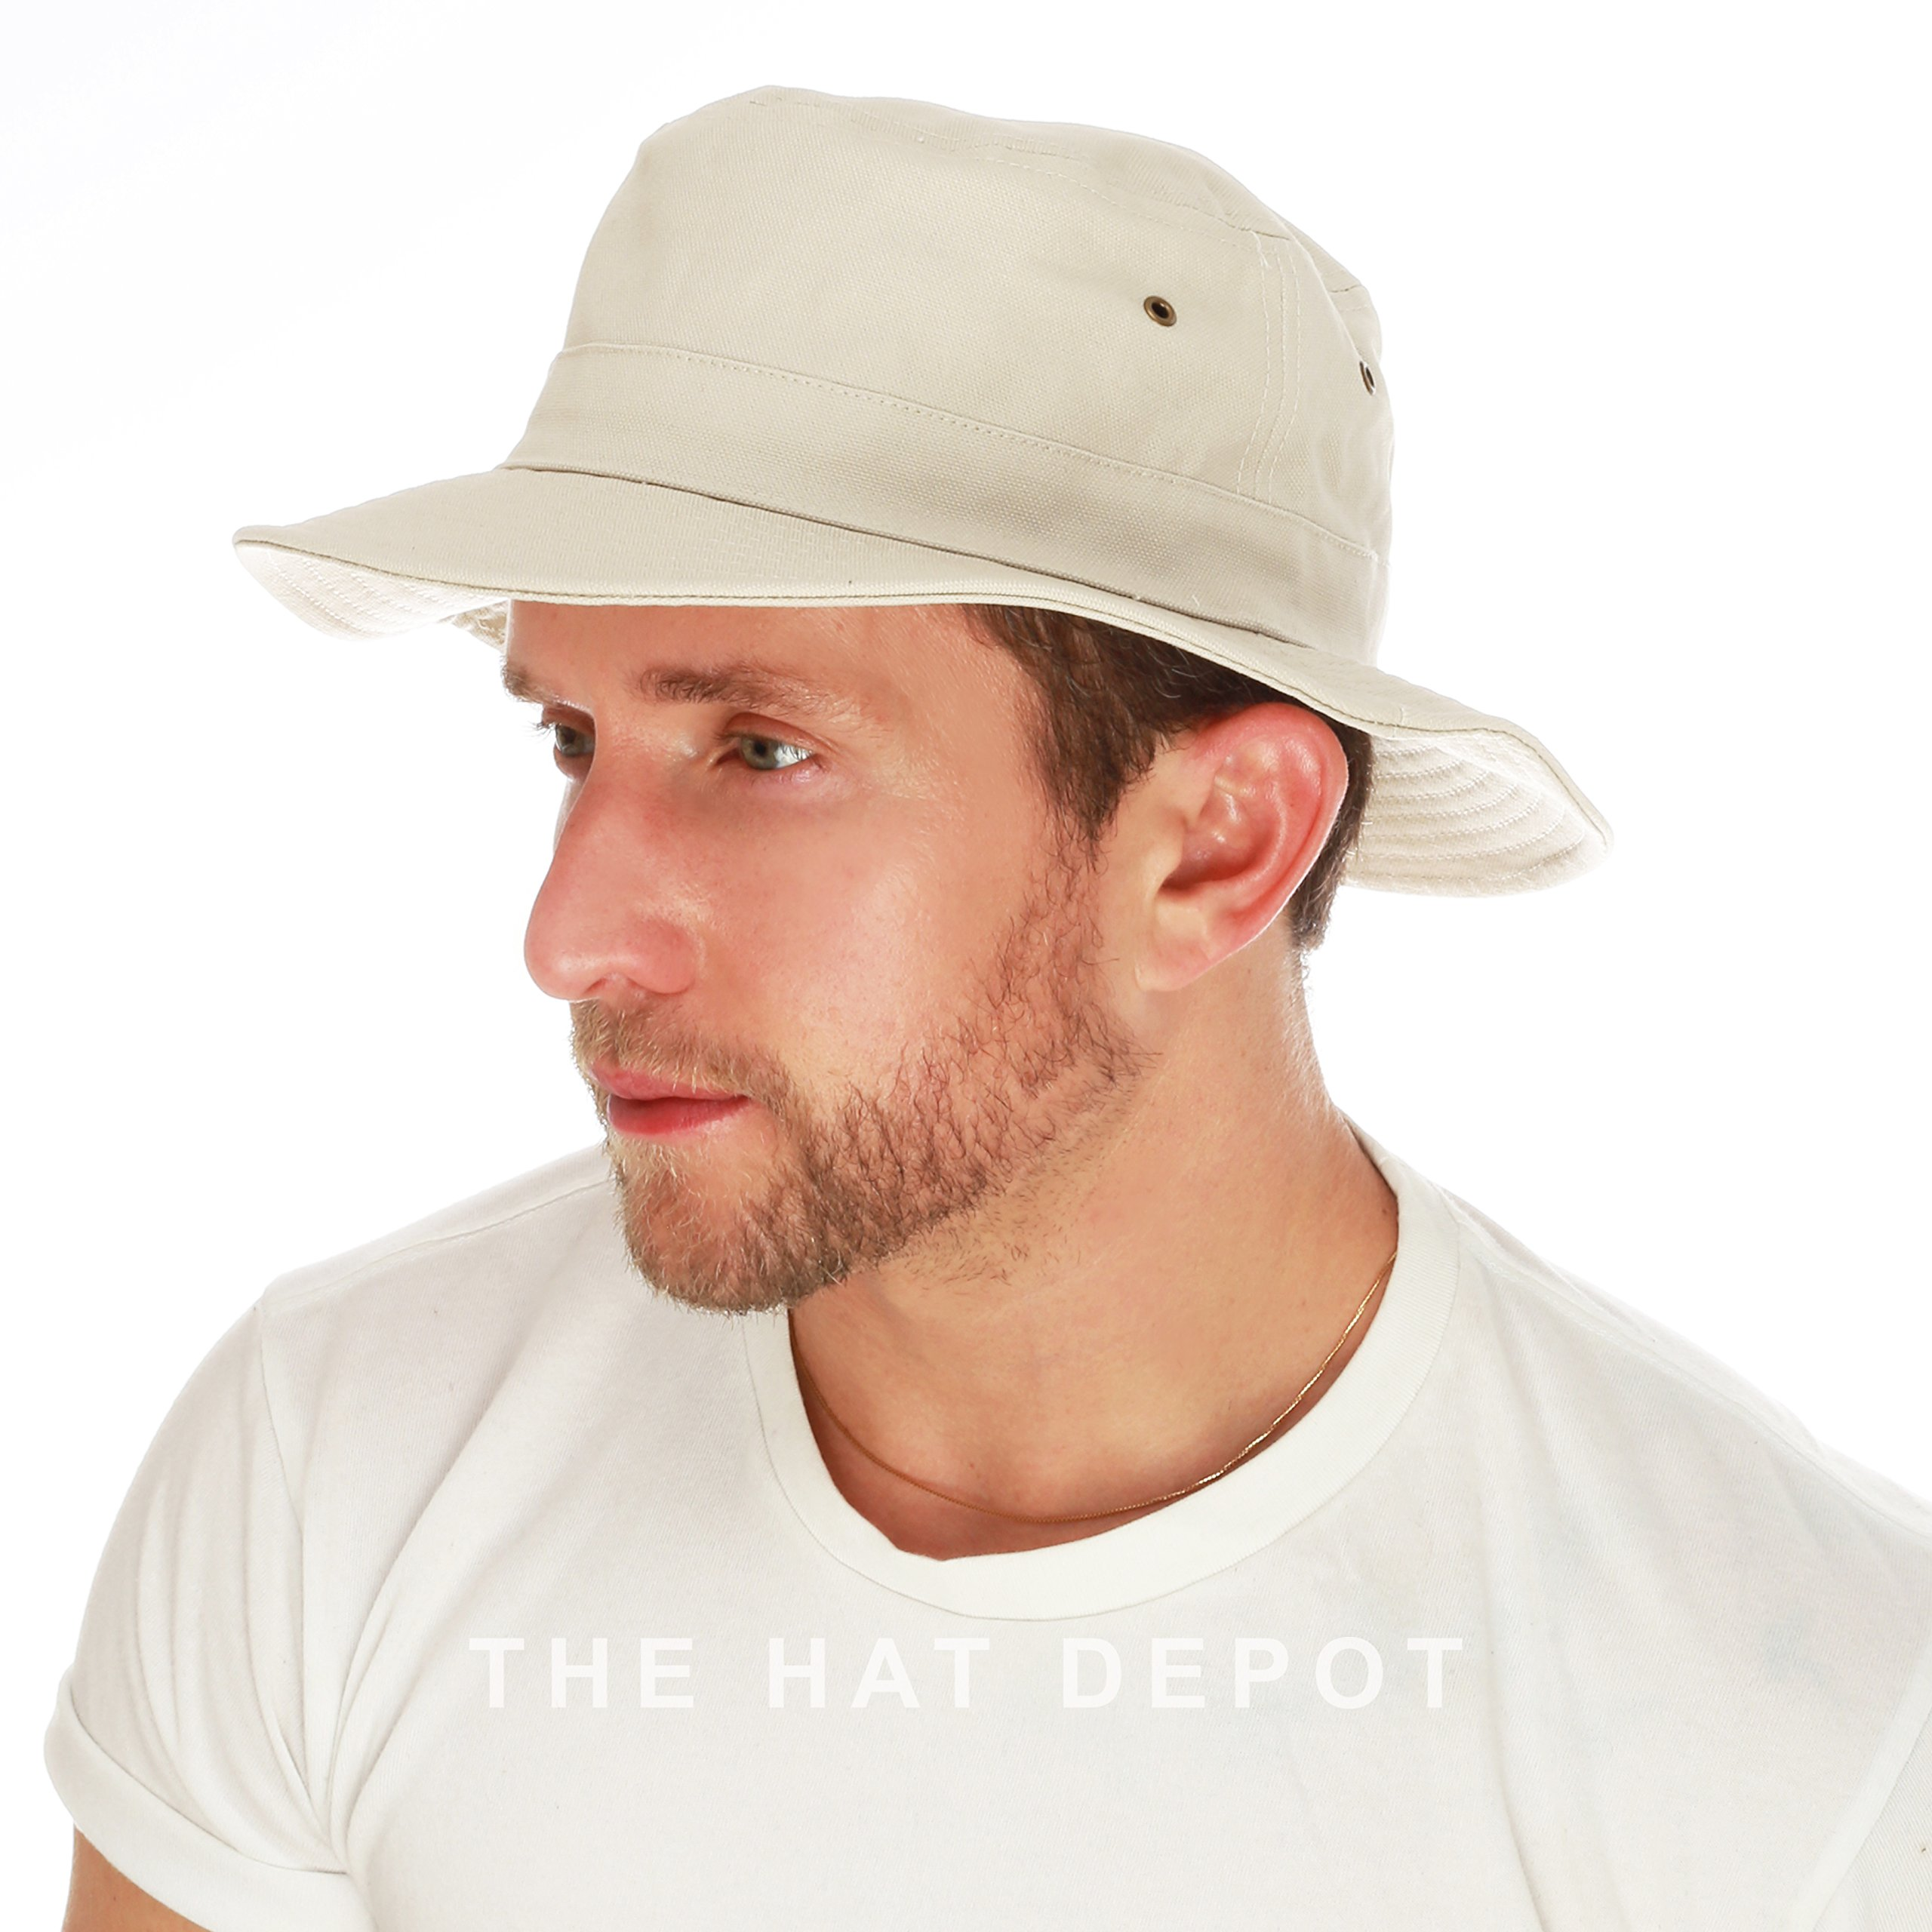 THE HAT DEPOT 100% Cotton Canvas Packable Summer Travel Bucket Hat (S/M, Putty)